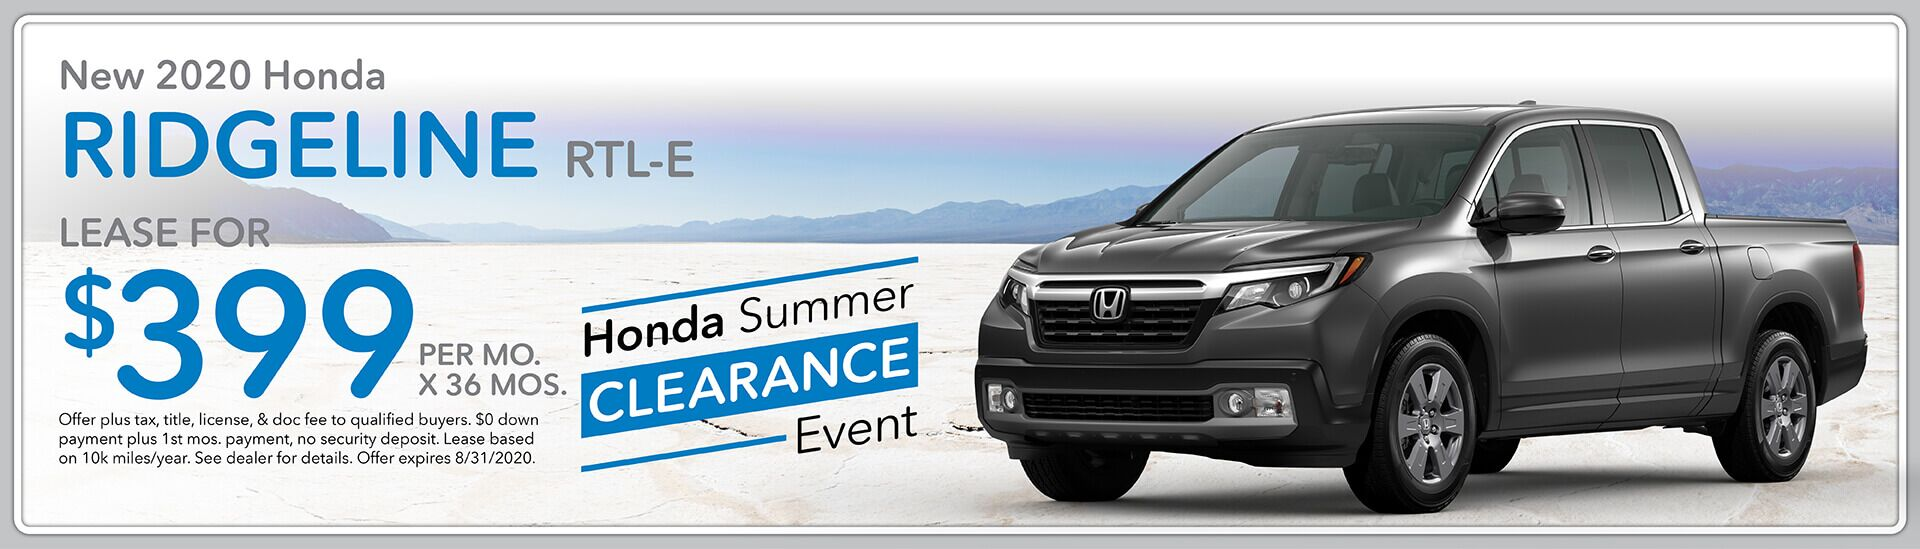 2020 Honda Ridgeline RTL-E, Lease for $399/mo. for 36 mos.   Green Bay, WI